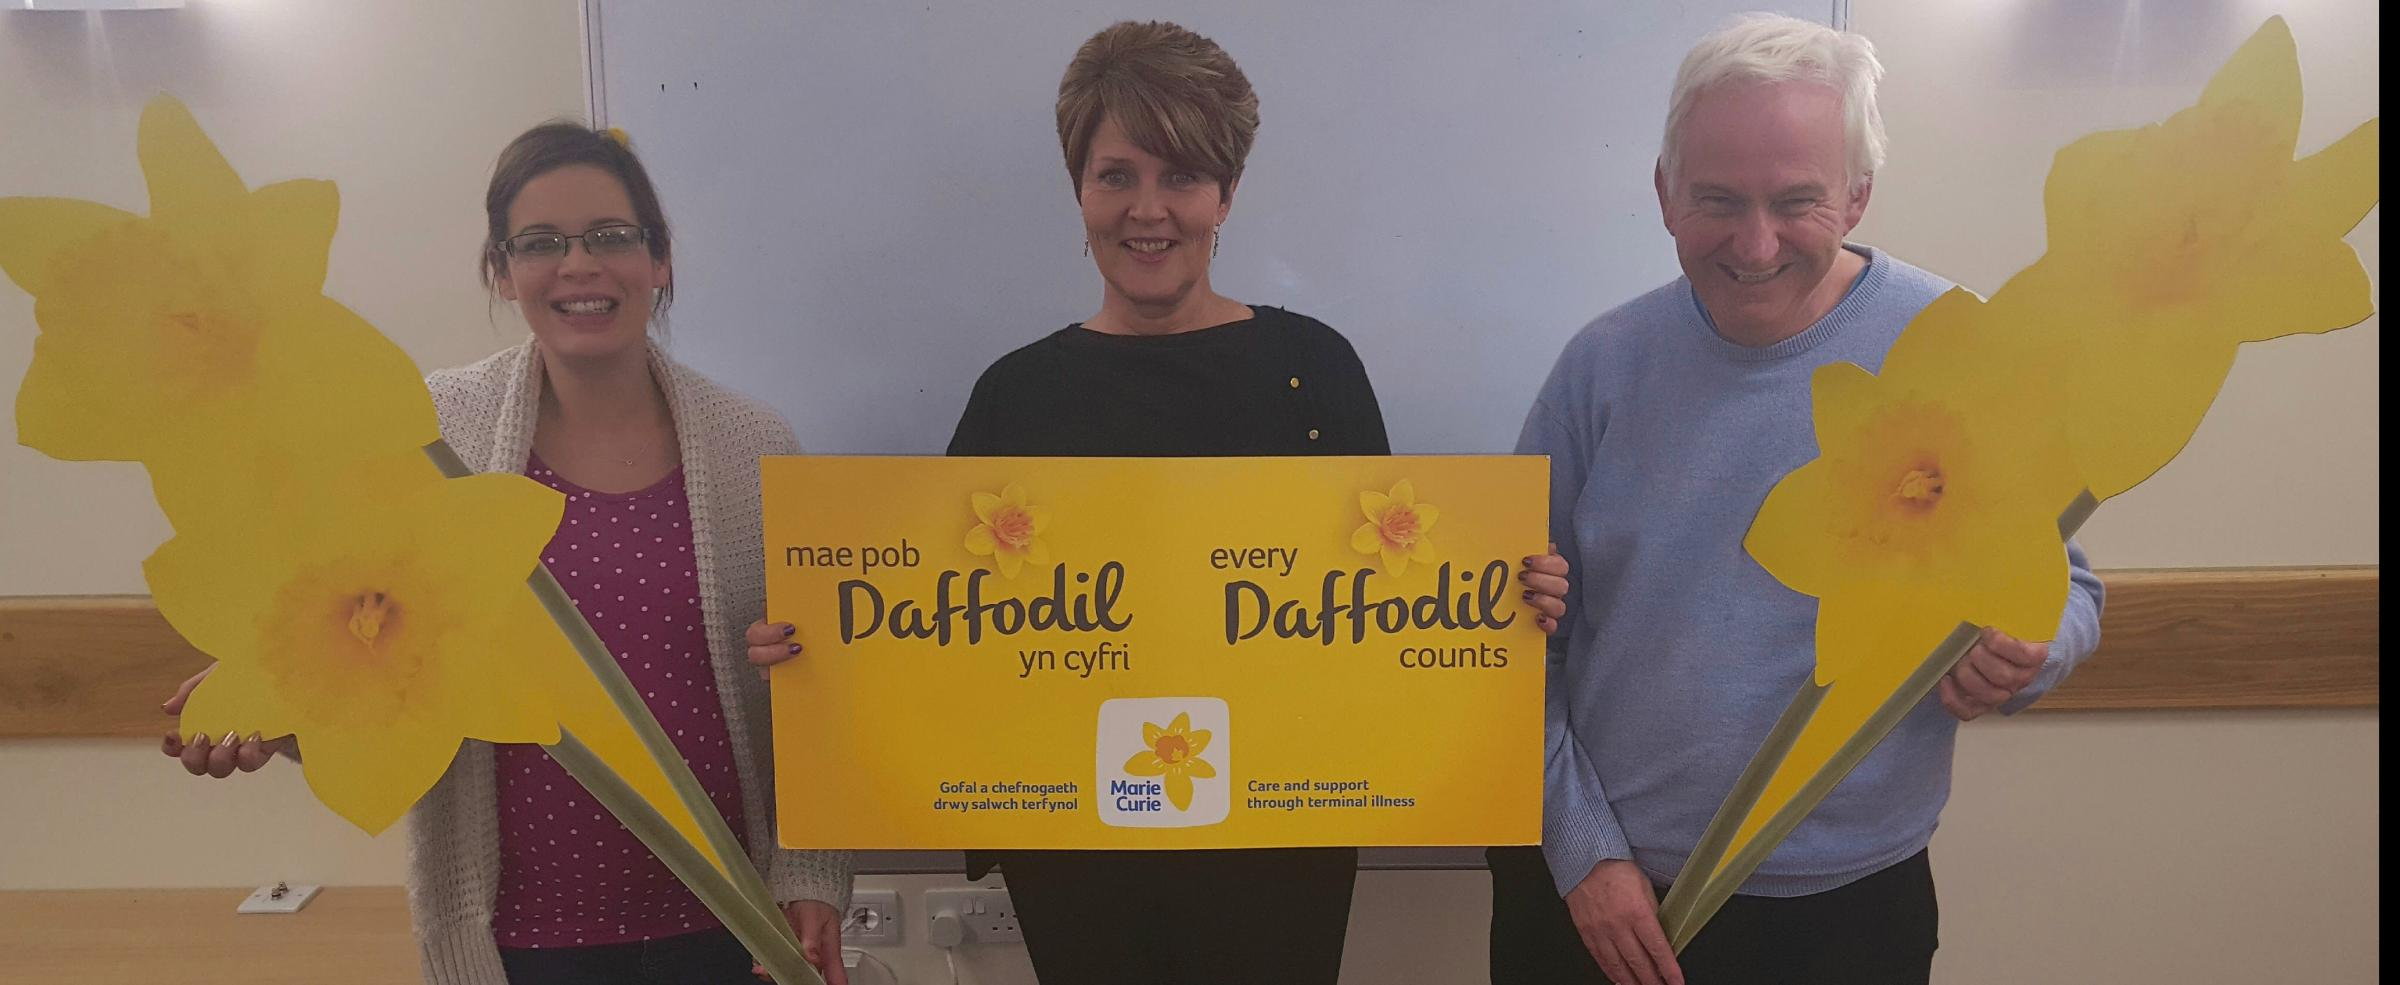 Marie Curie fundriaisers, Sian Danford, Kaye derwas and Alan Crowe - need your help!